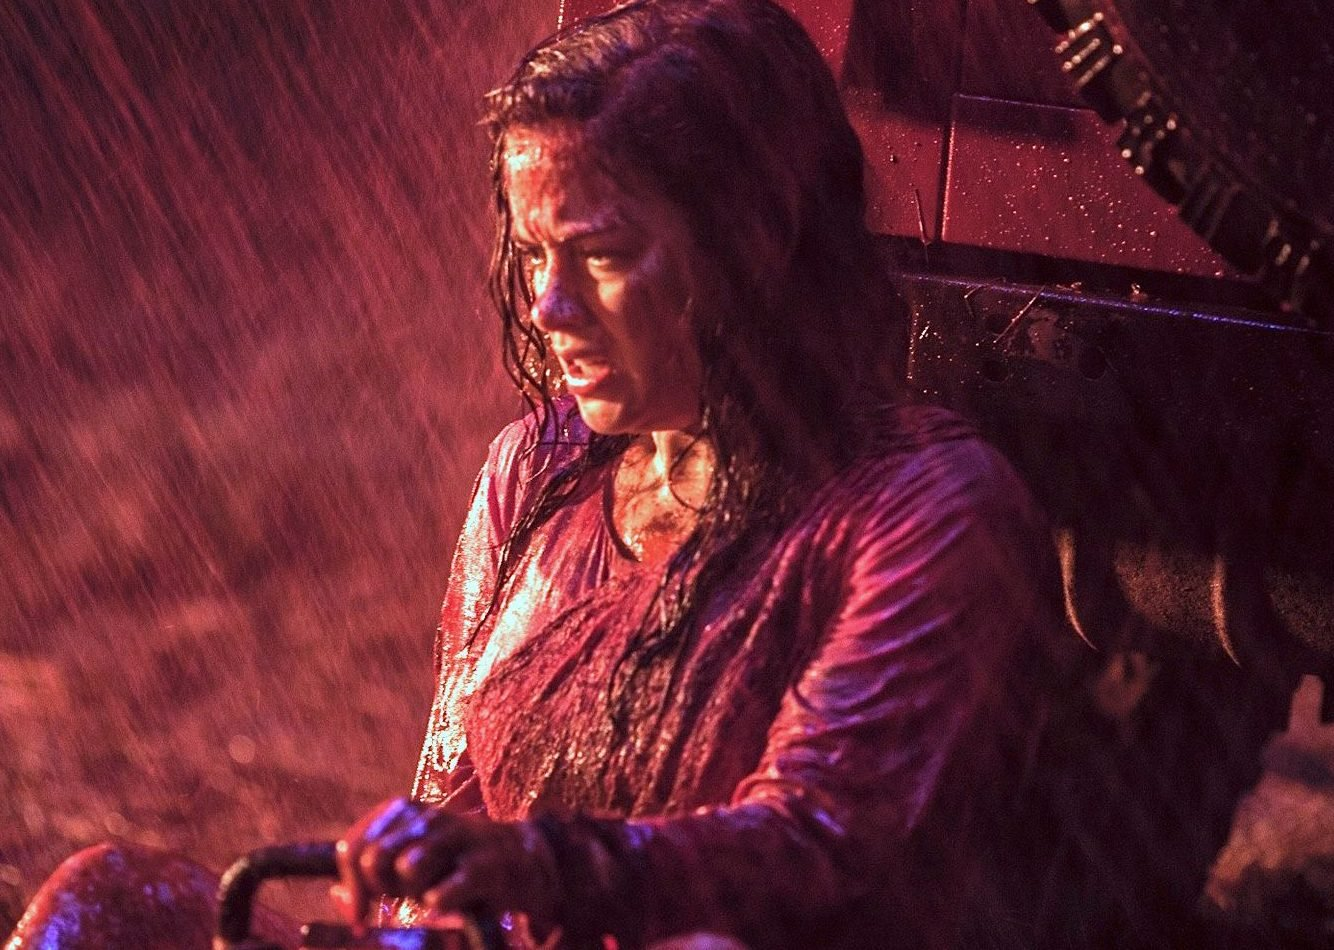 Evil Dead 2013 Mia e1620291544722 The Best (And Worst) Revivals Of 80s Movies And TV Shows